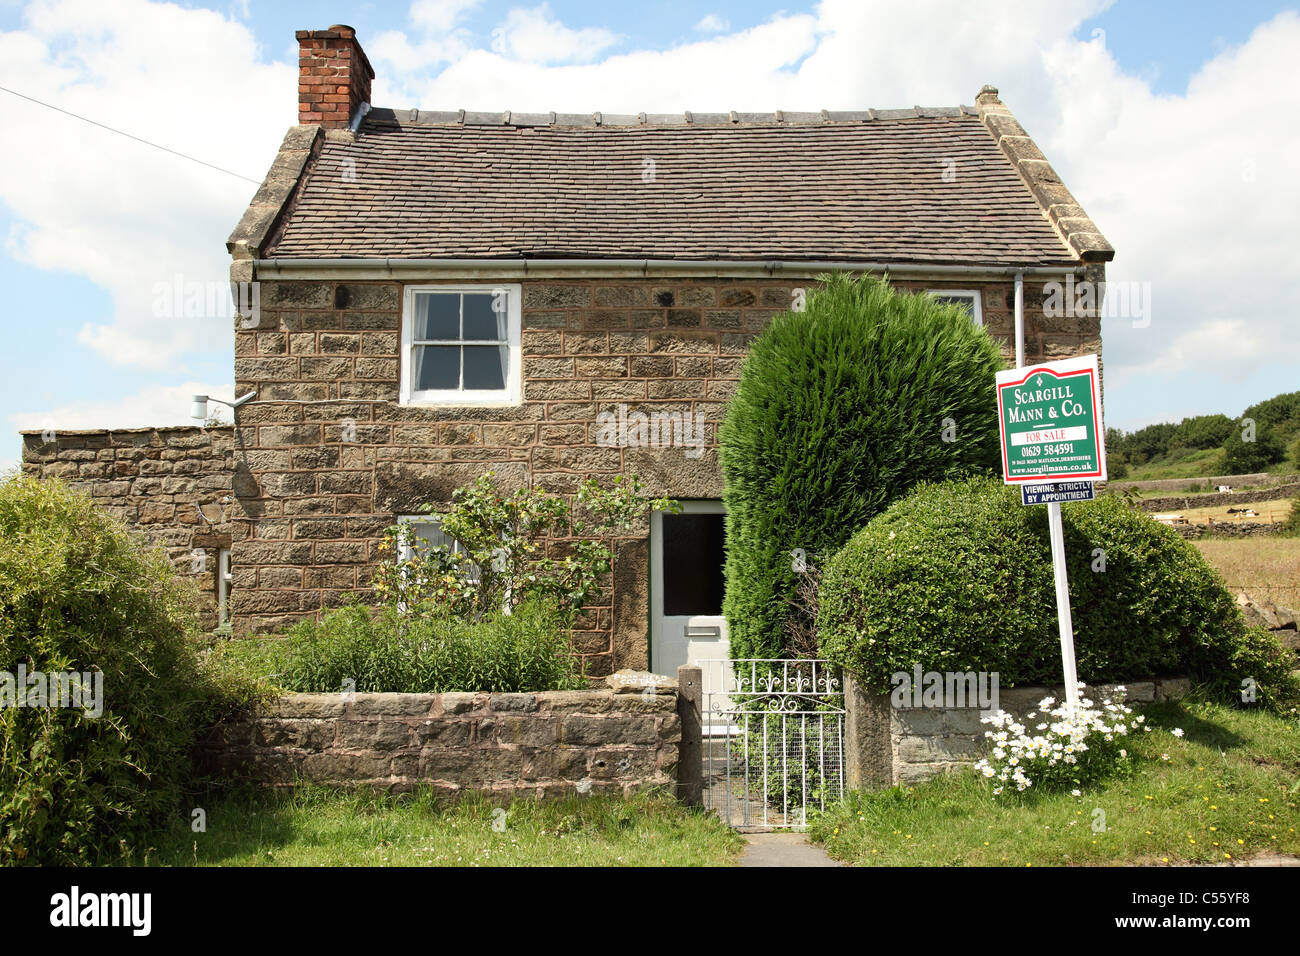 A cottage for sale and advertised as having holiday home potential in Derbyshire, England, U.K. - Stock Image